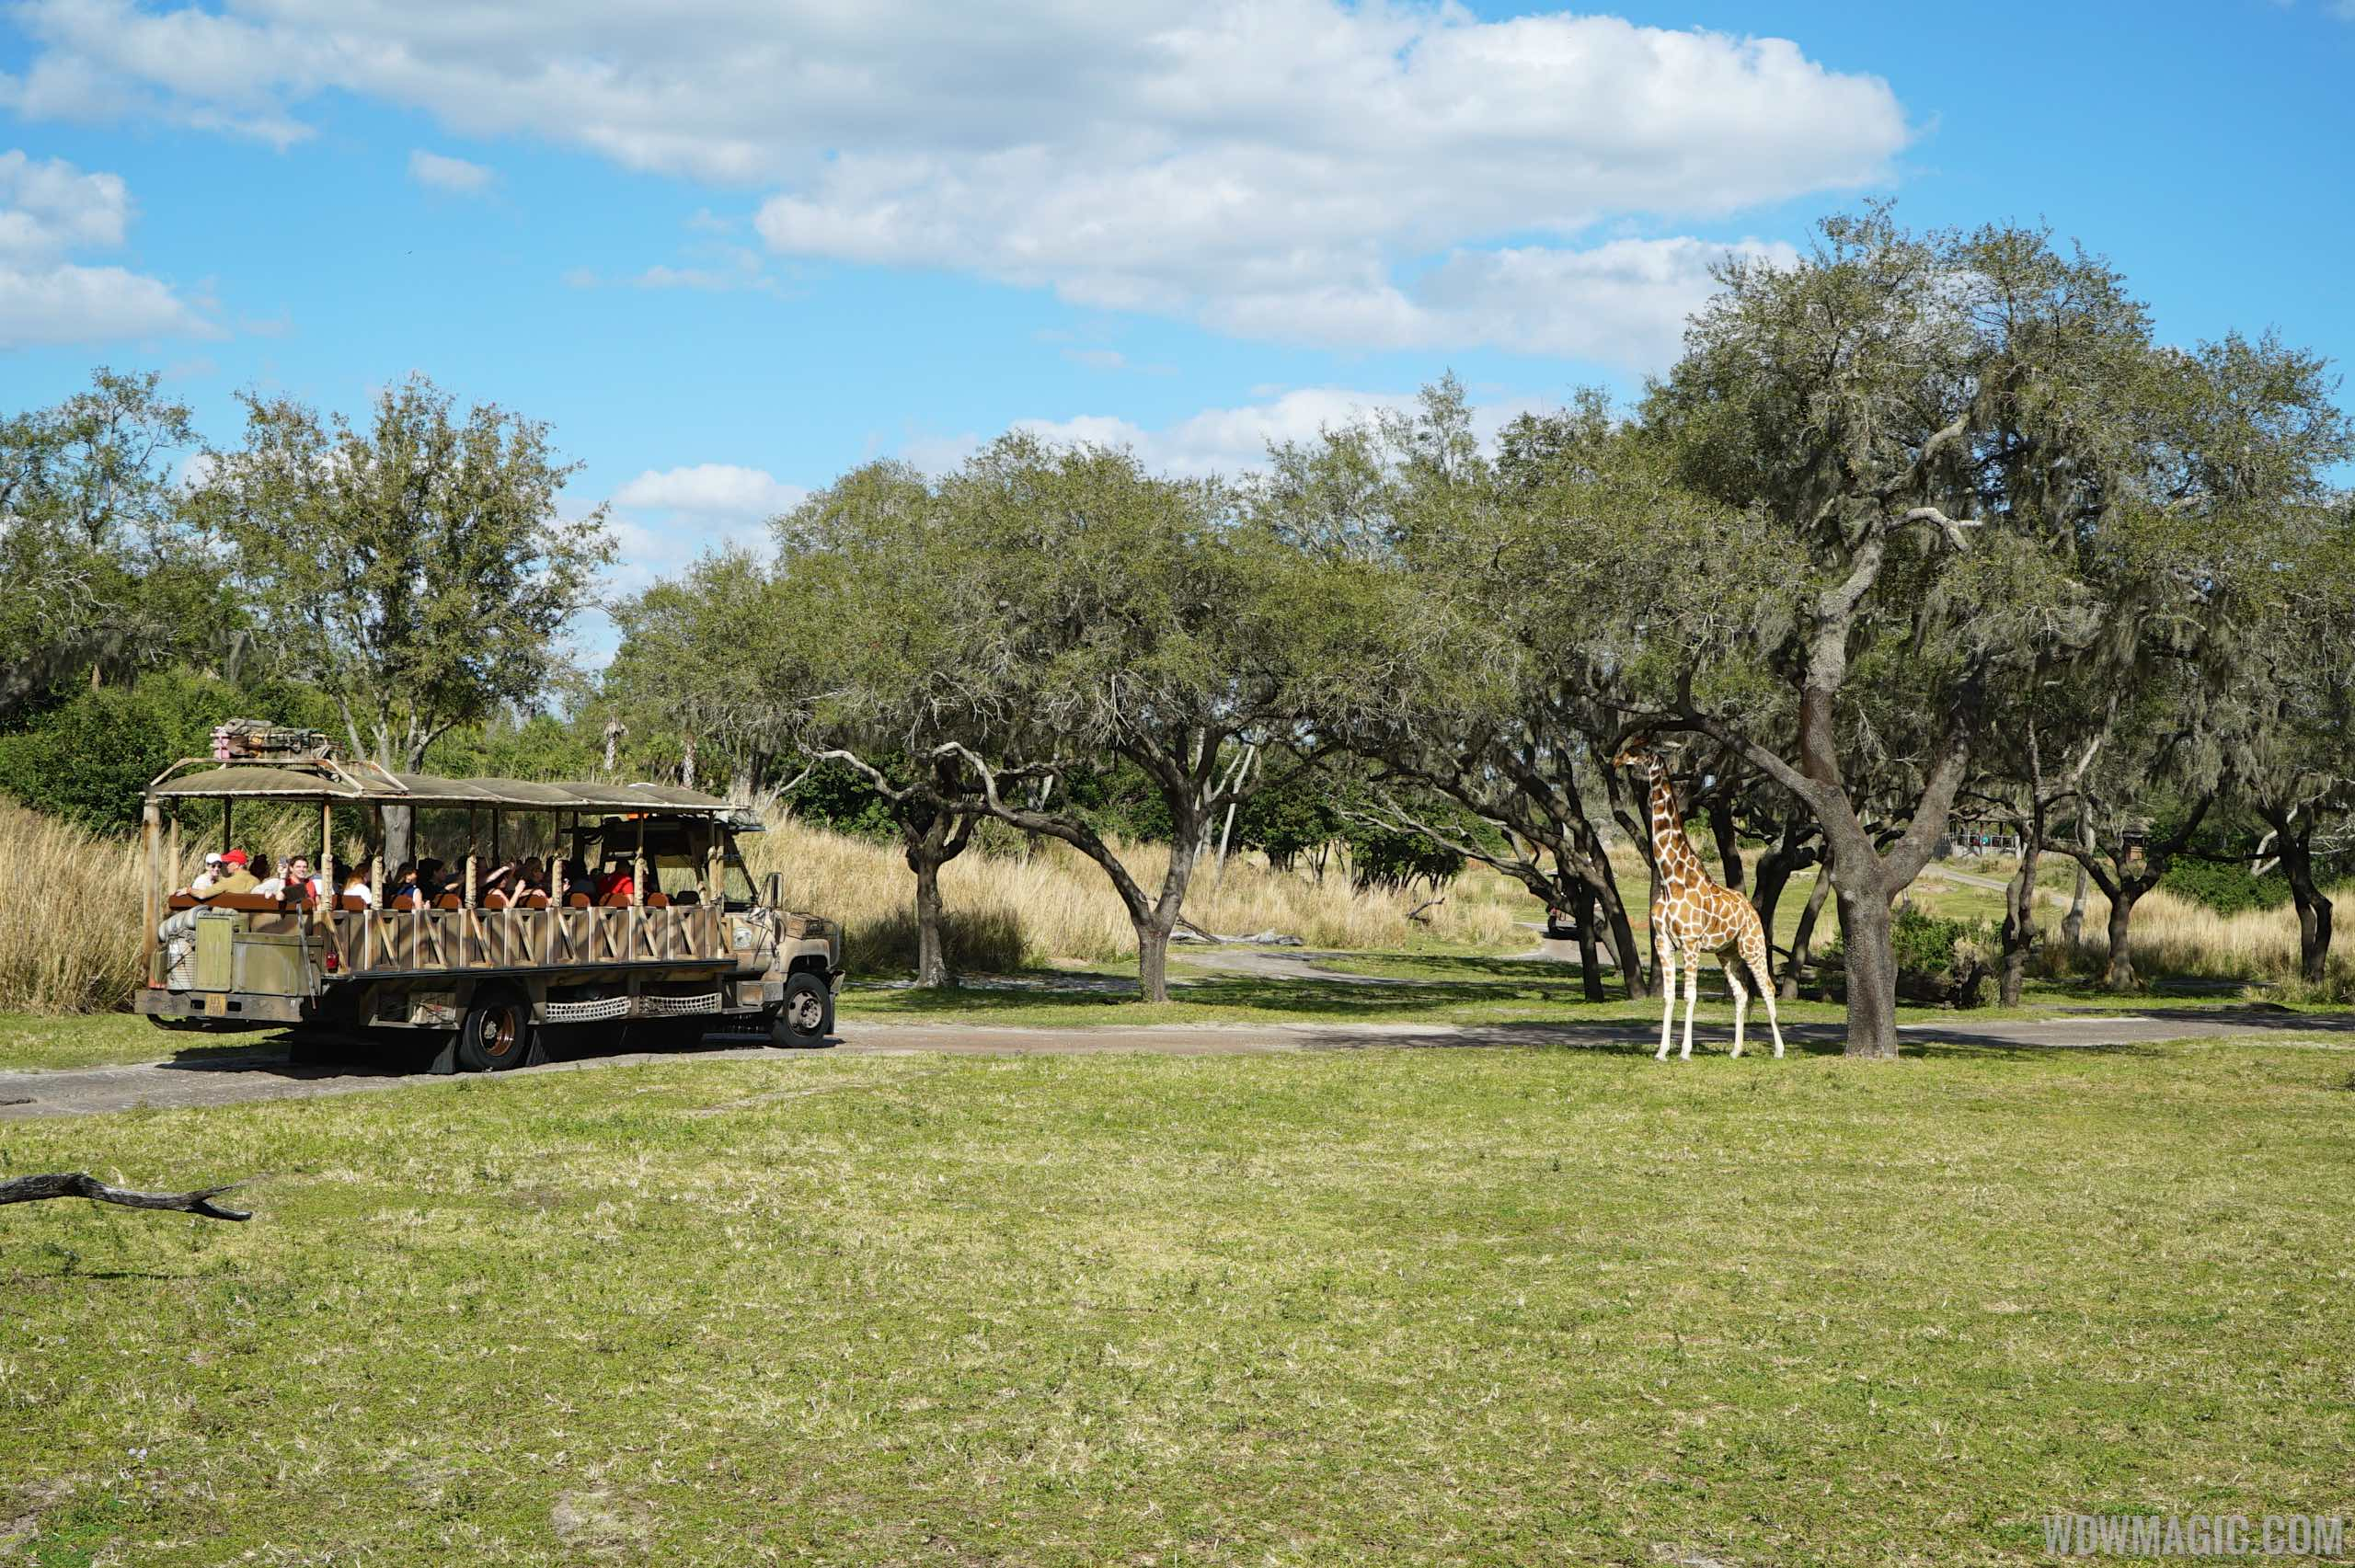 Kilimanjaro Safaris will be one of the stroller test attractions